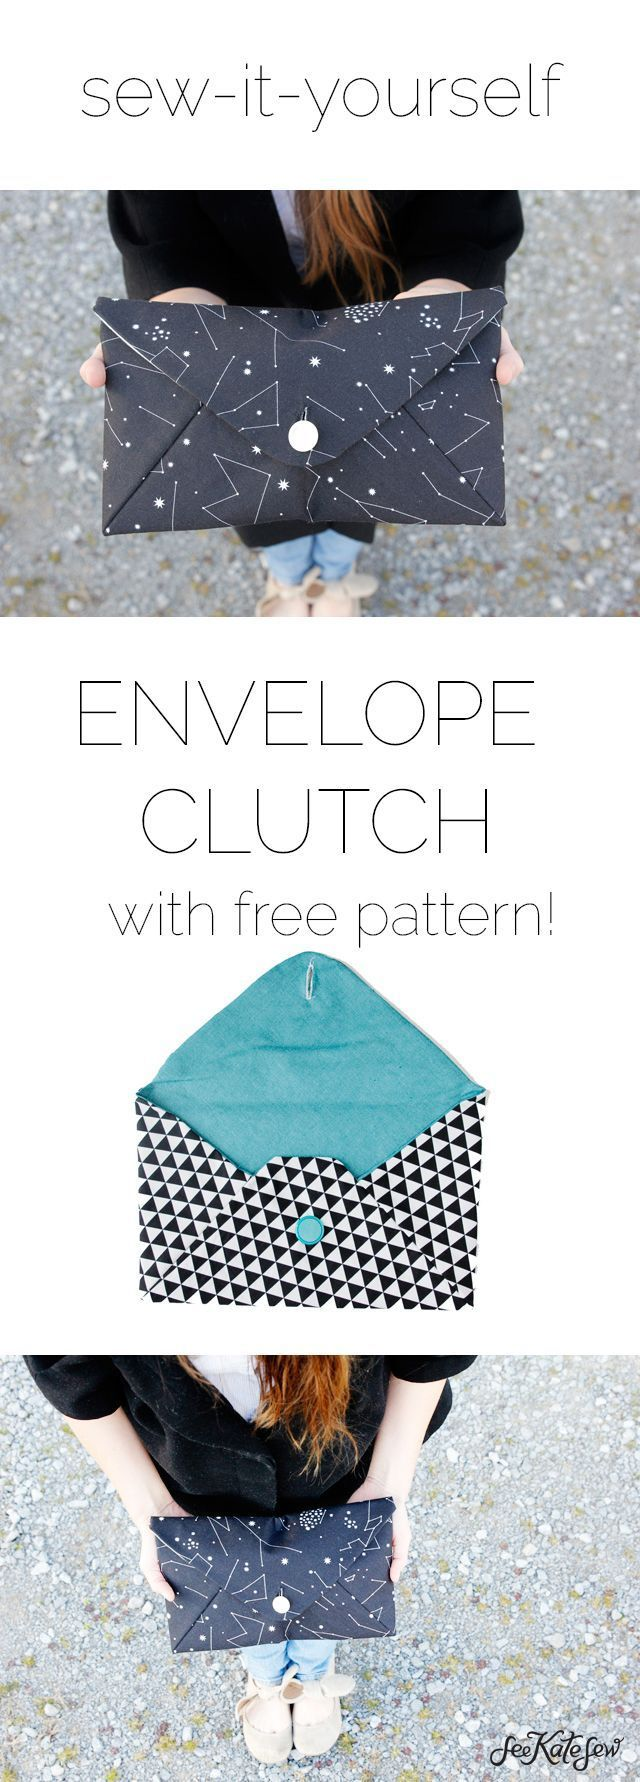 Free Envelope Clutch Pattern | how to sew a clutch | diy clutch | sewing tips and tricks | sewing tutorials | diy handbag | diy accessories | free sewing patterns || See Kate Sew #freepatterns #sewingtutorials #sewingproject